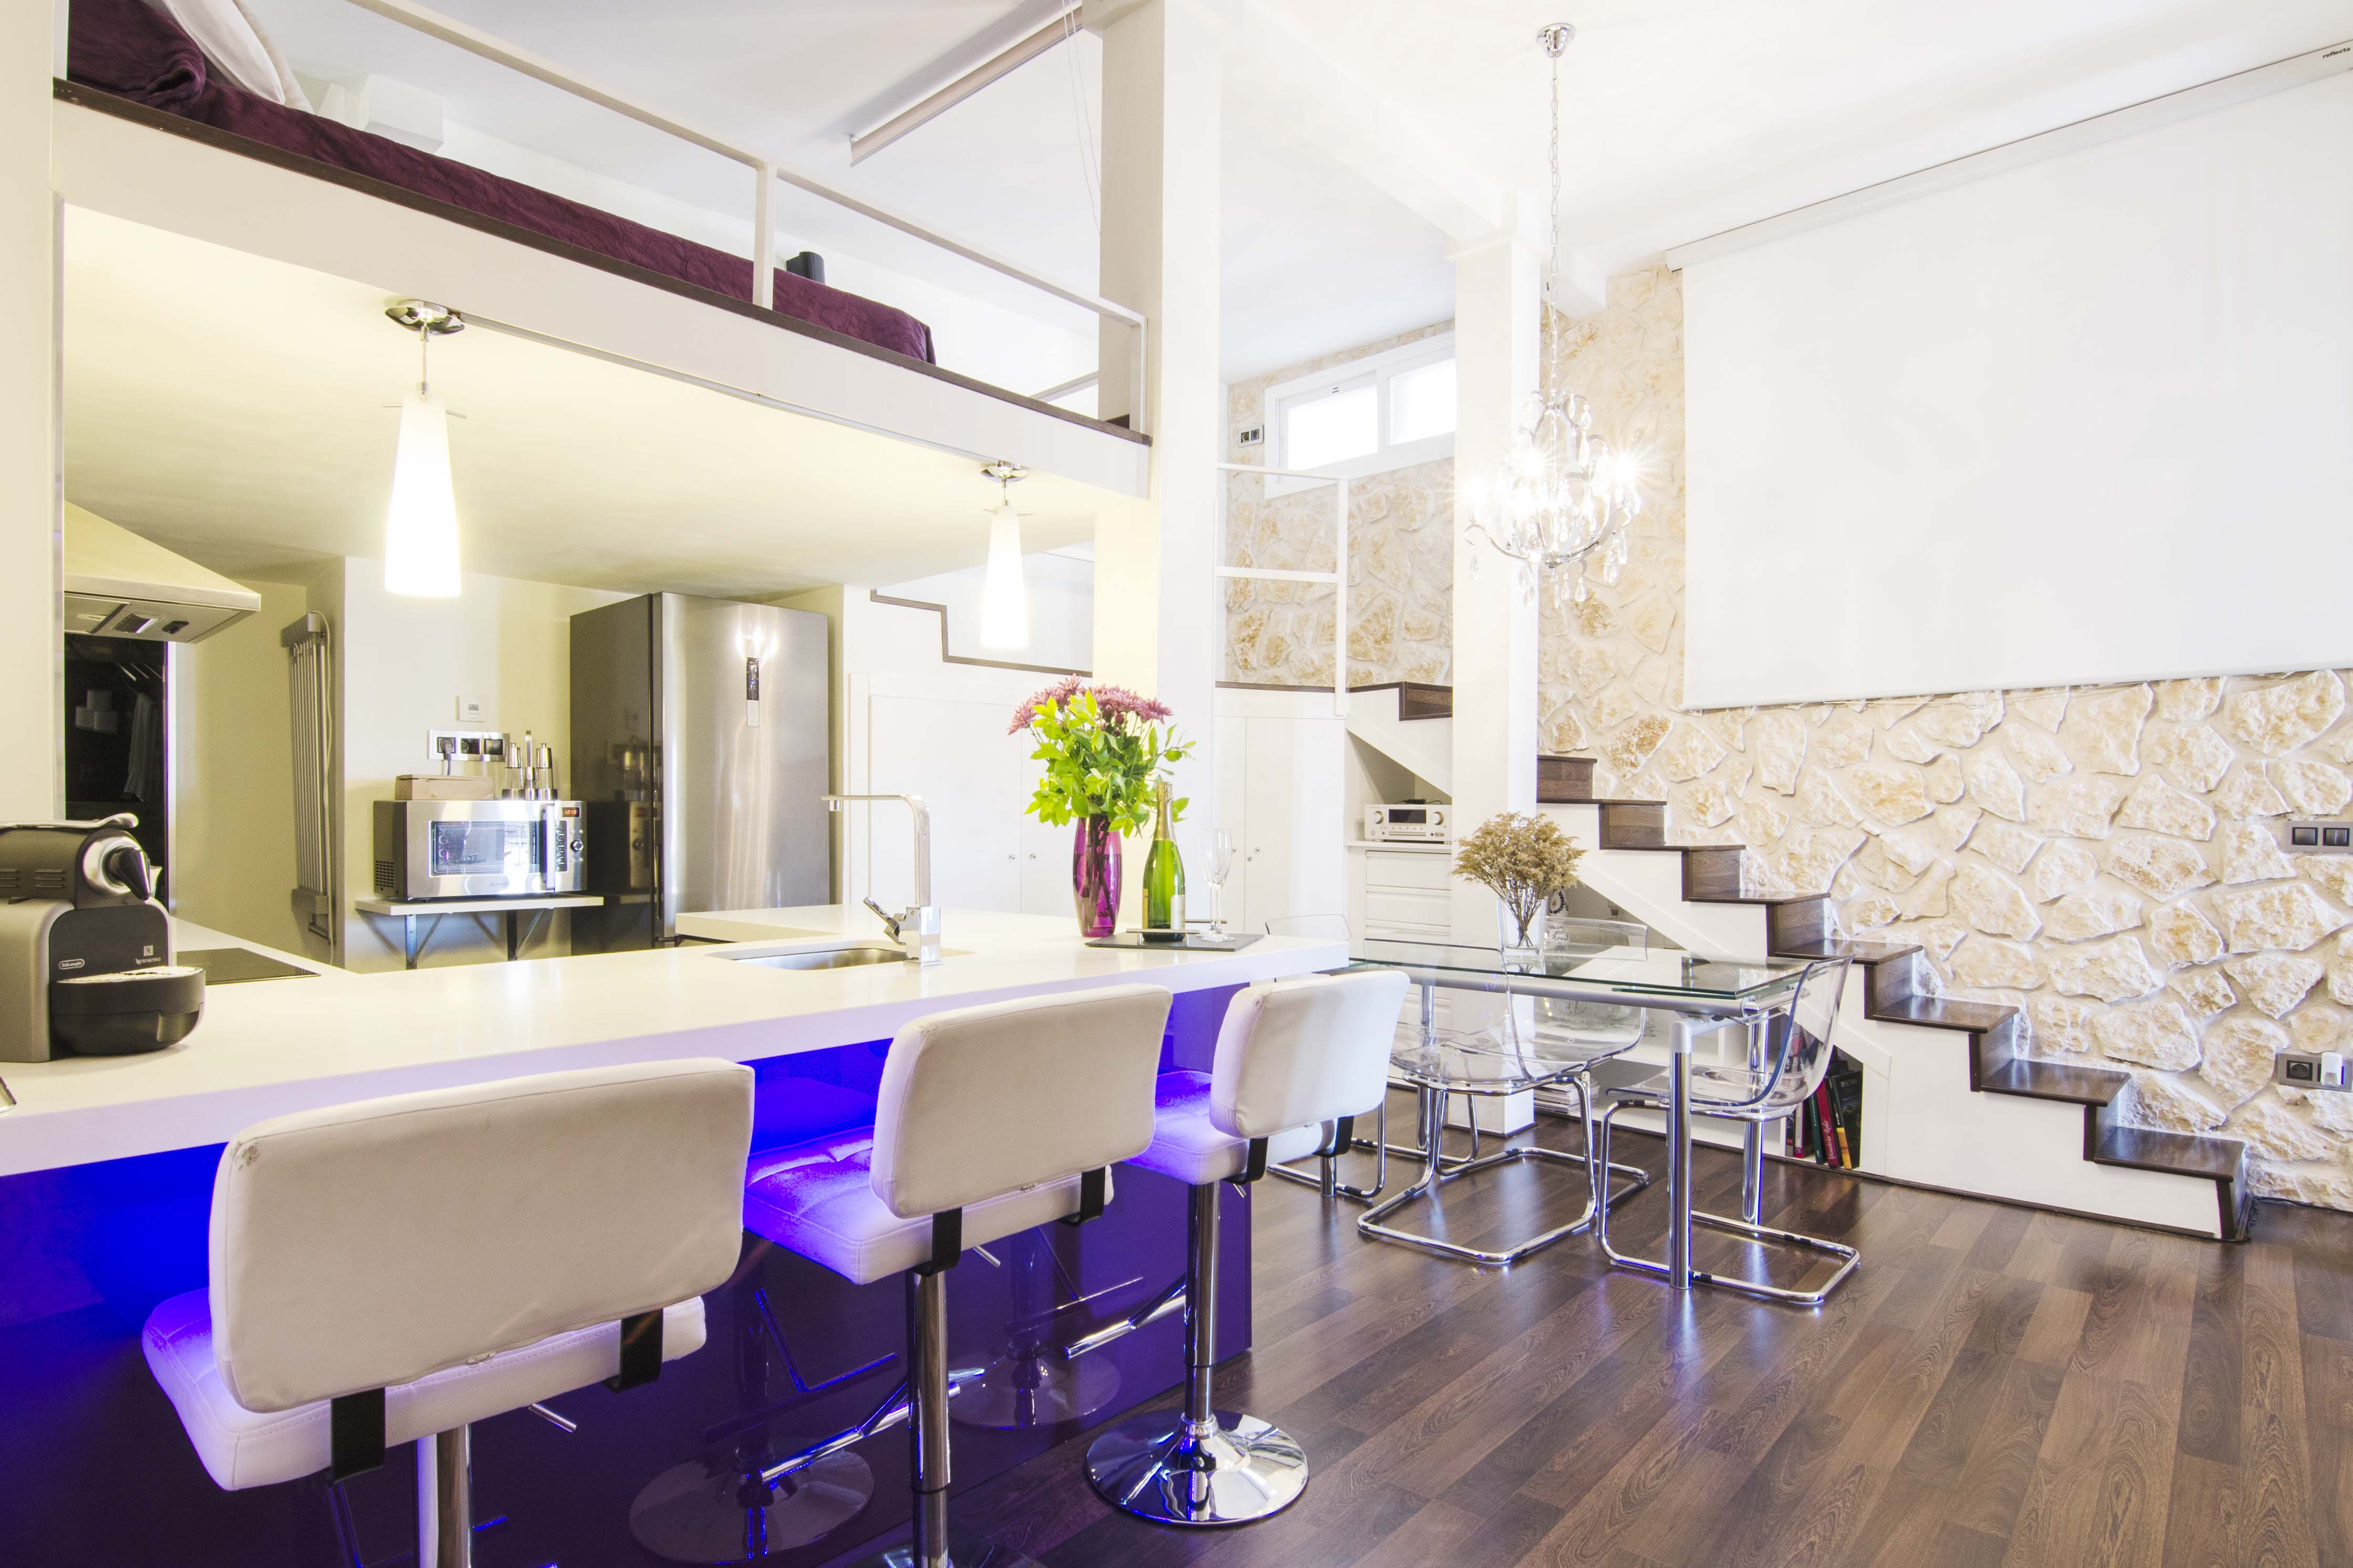 Property Image 1 - Design 1 Bedroom Loft in Heart of Madrid